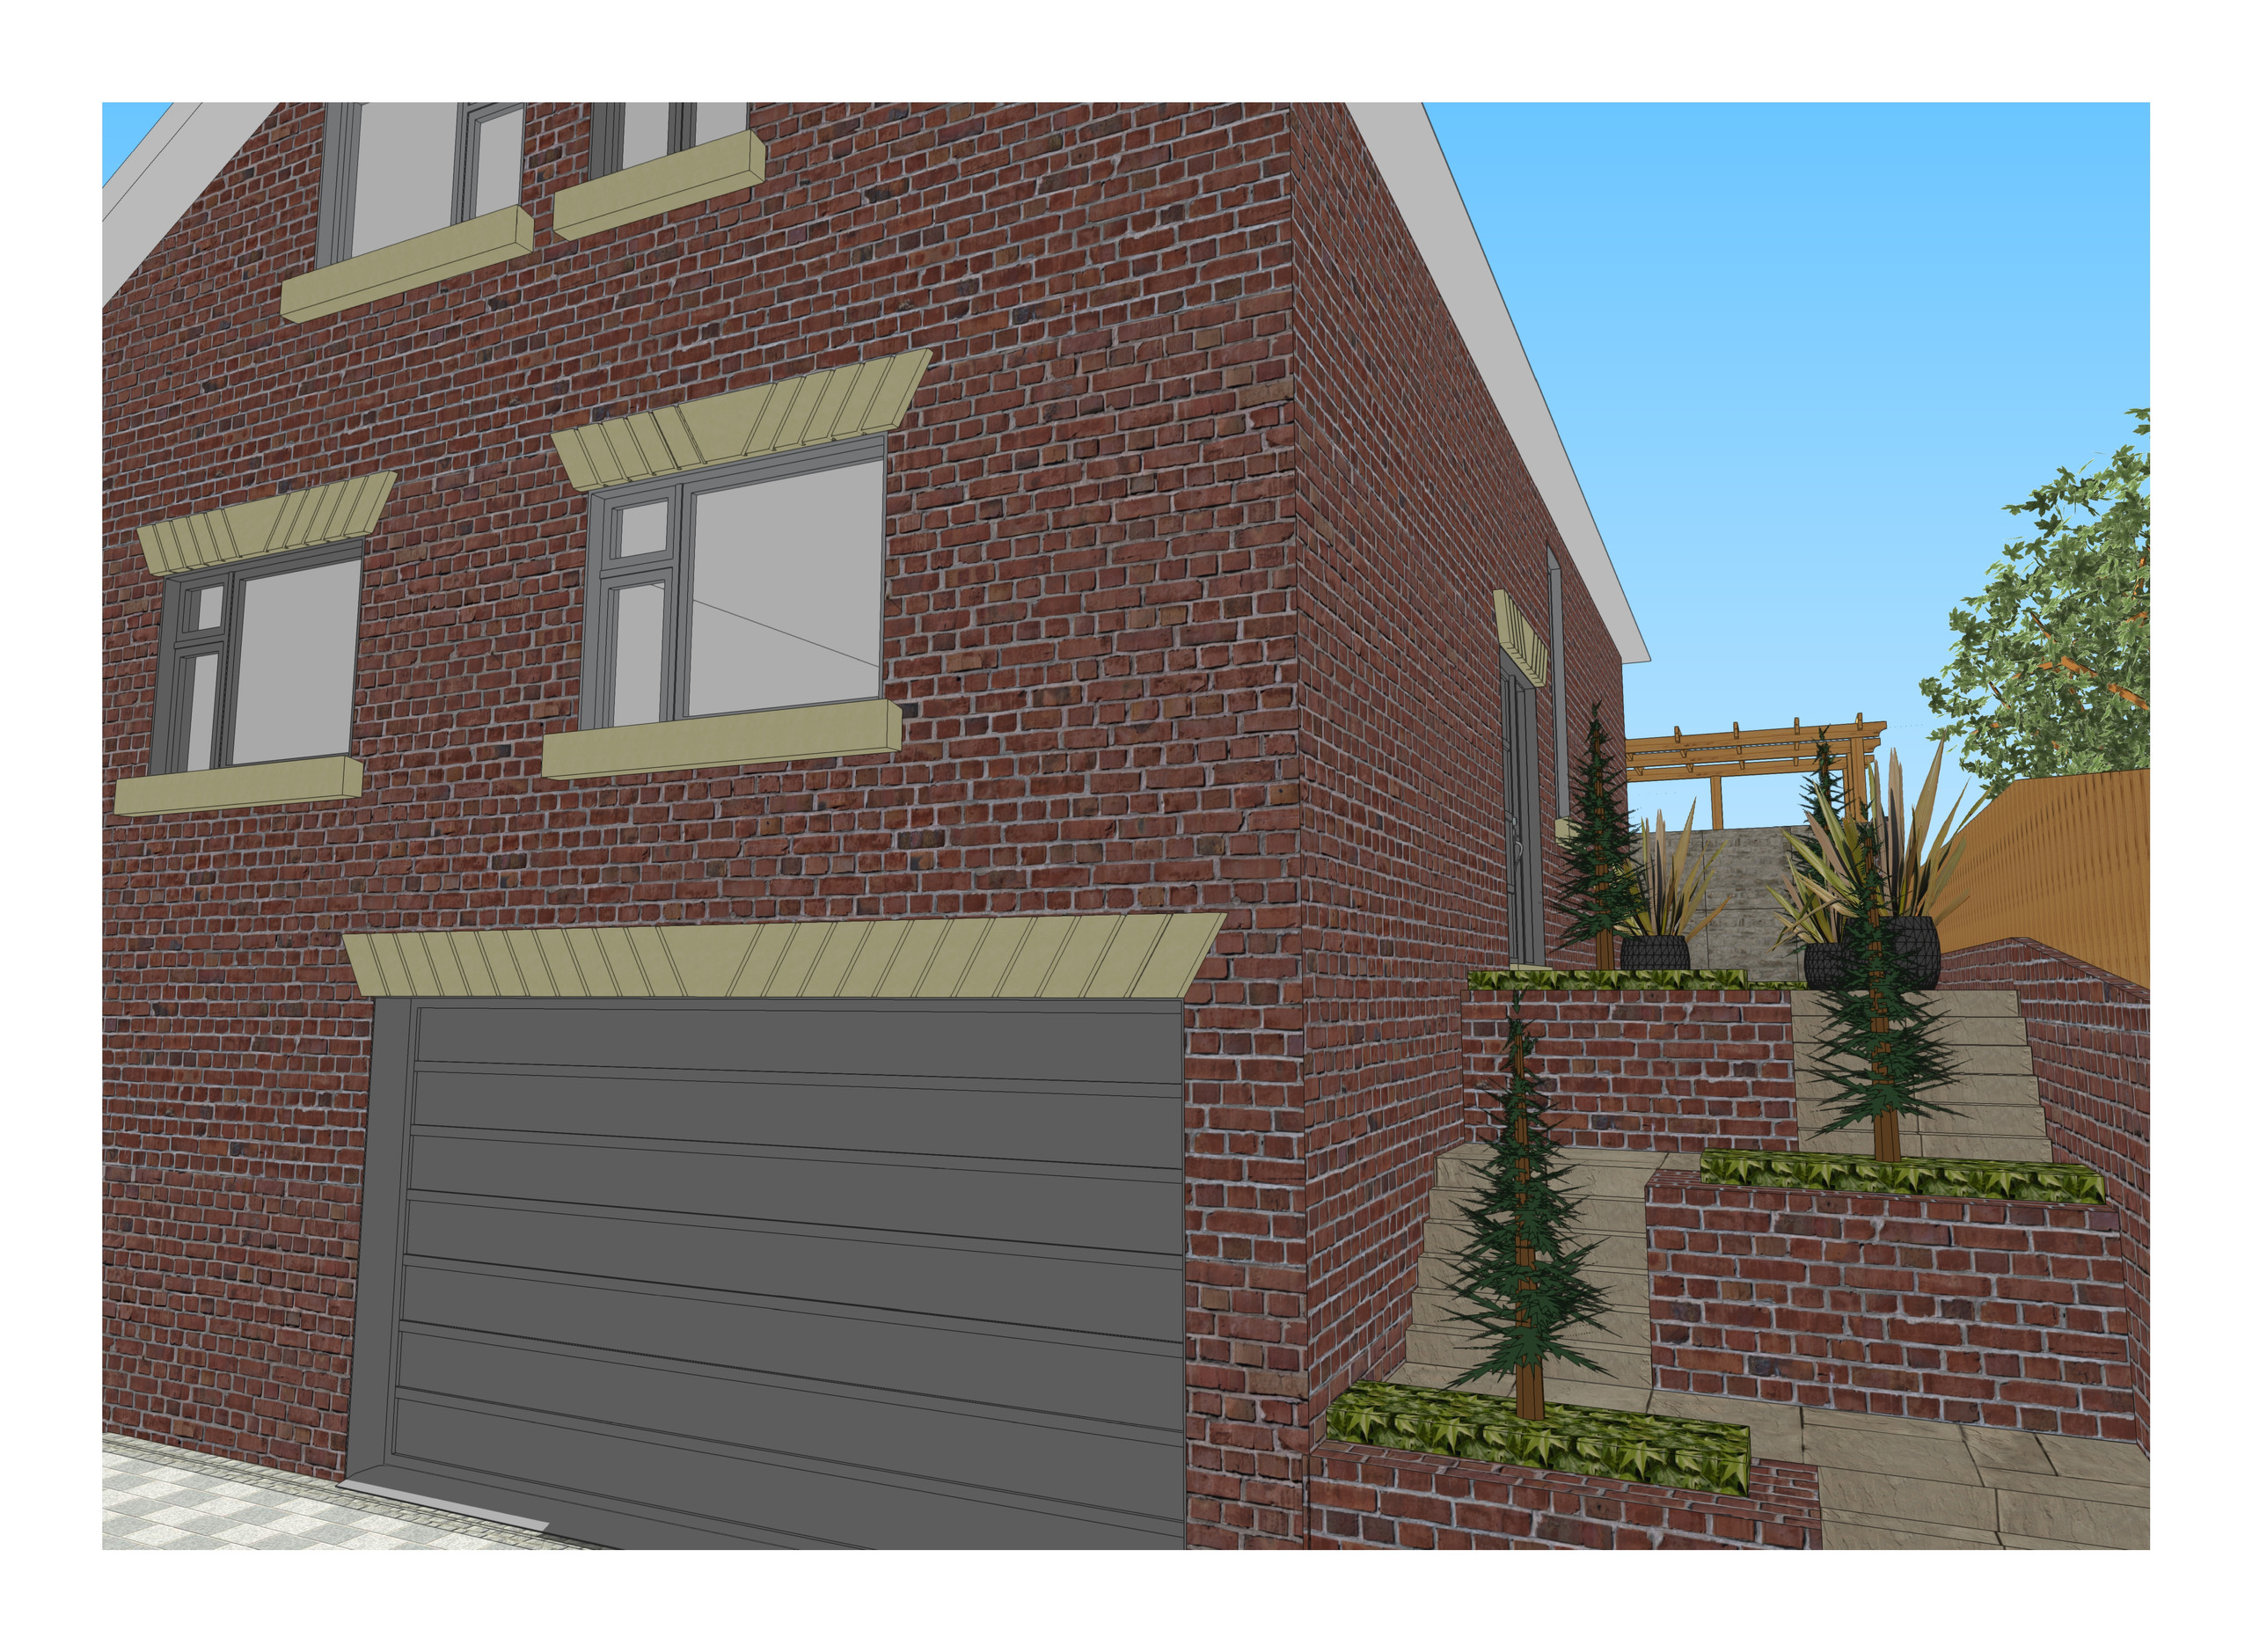 6. 3D images for a new build property in Uton West Yorkshire. Garden designer in Wakefield